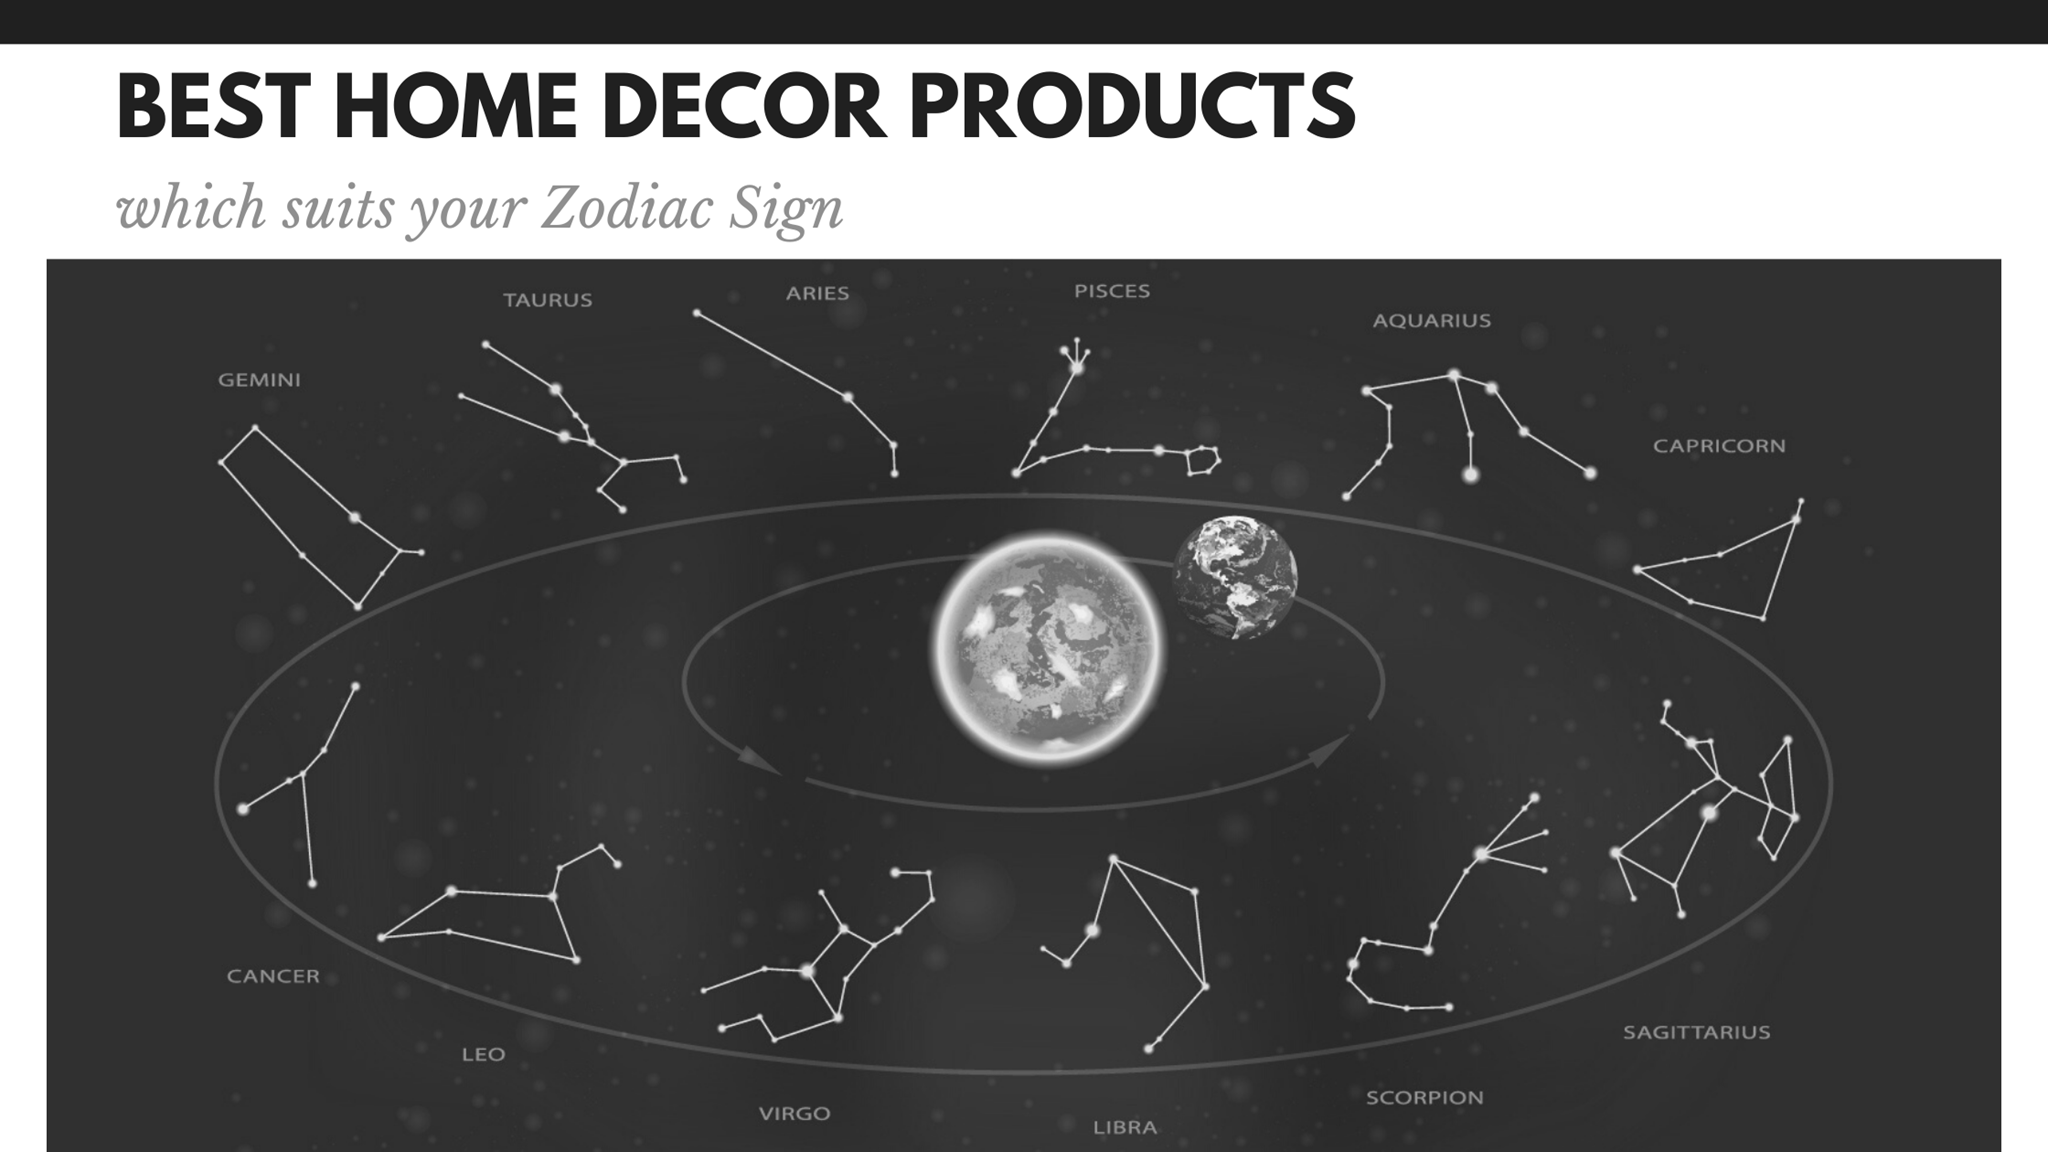 Best Home Decor Products which suits your Zodiac Sign